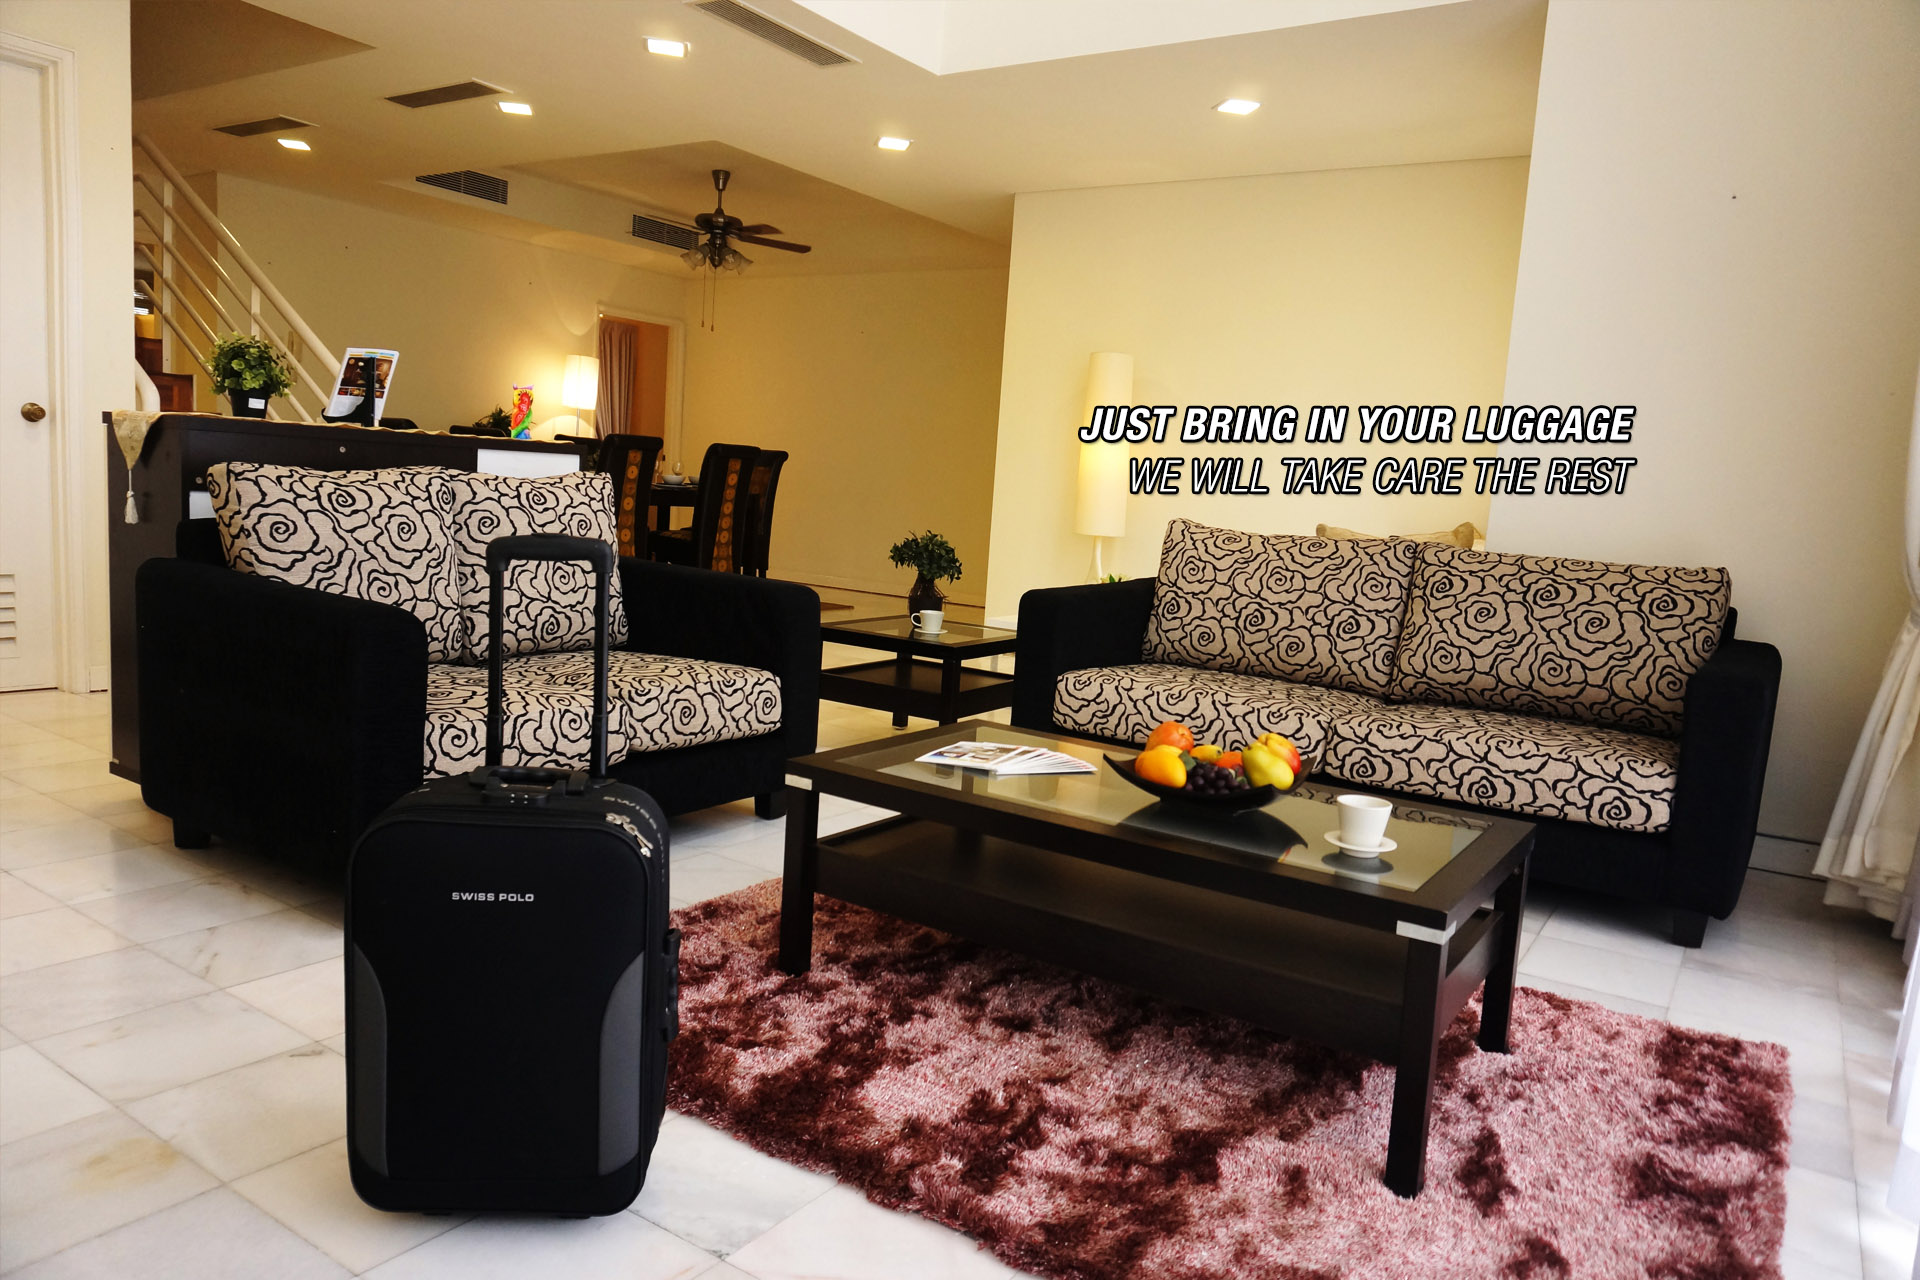 Expats Furniture Rental Sdn. Bhd. Is A Furniture Rental Provider In  Bangsar, Kuala Lumpur. We Provide Long Term And Short Term Furniture And  Appliances ...